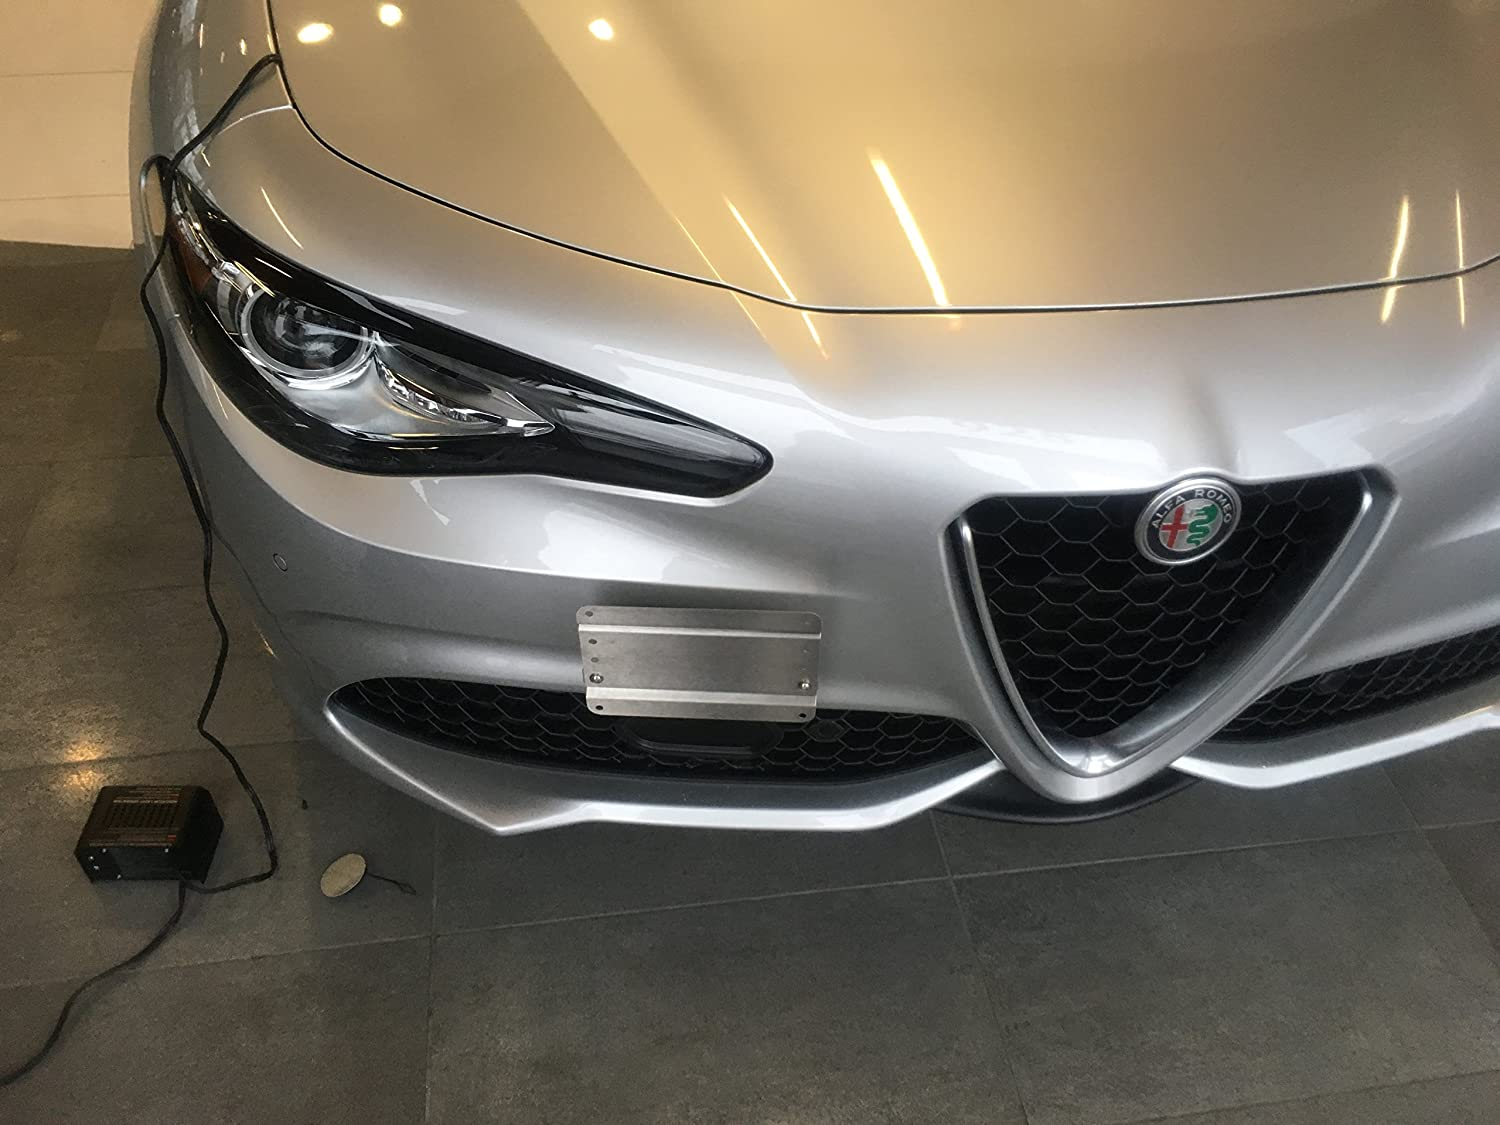 GMG Motorsports ALFA Romeo Giulia NO Holes License Plate Bracket Kit